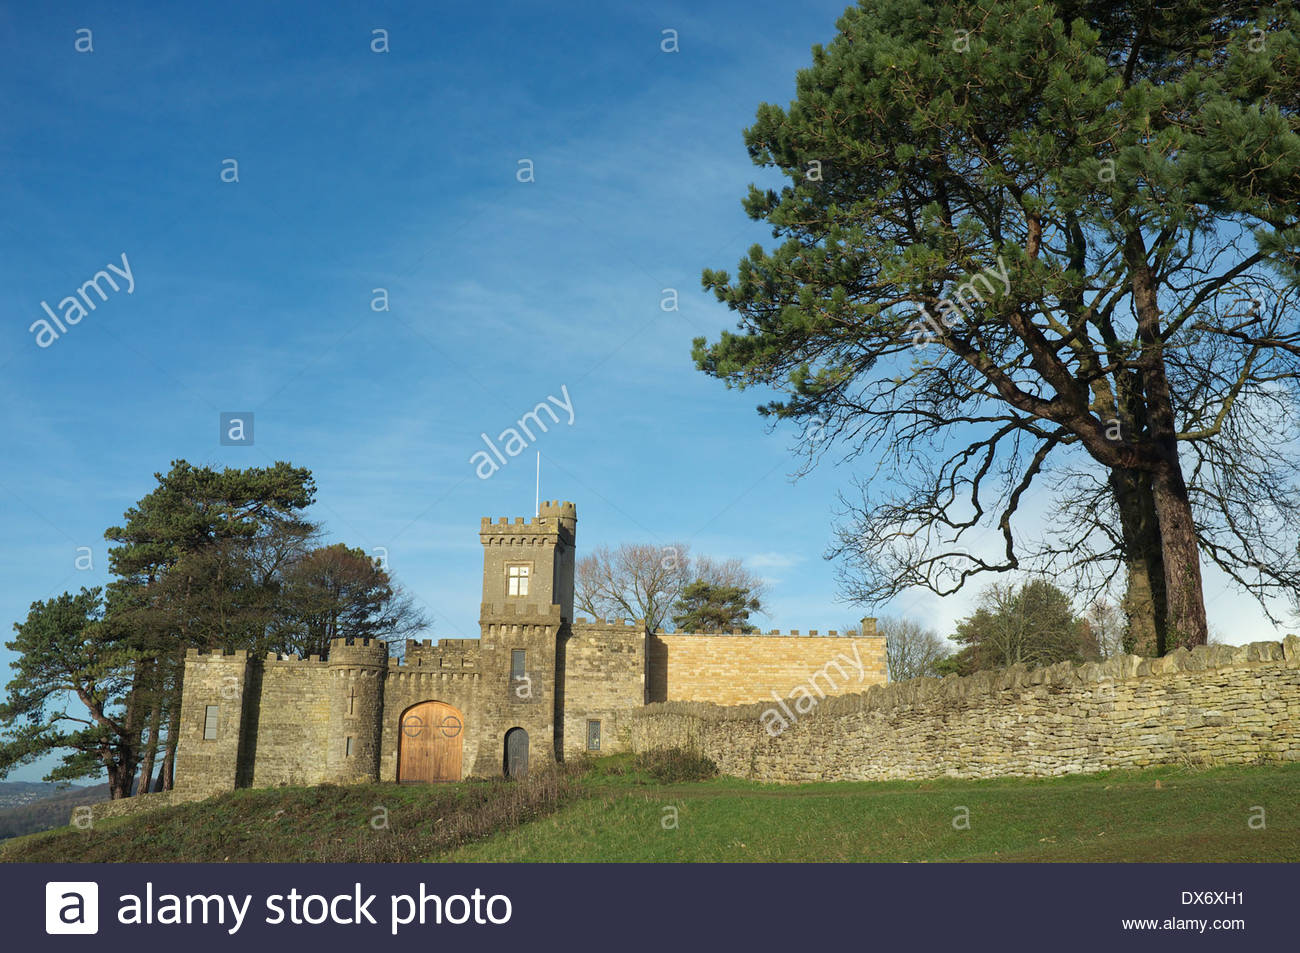 Rodborough Hill Fort, on Rodborough Common, near Stroud in Gloucestershire, UK. - Stock Image